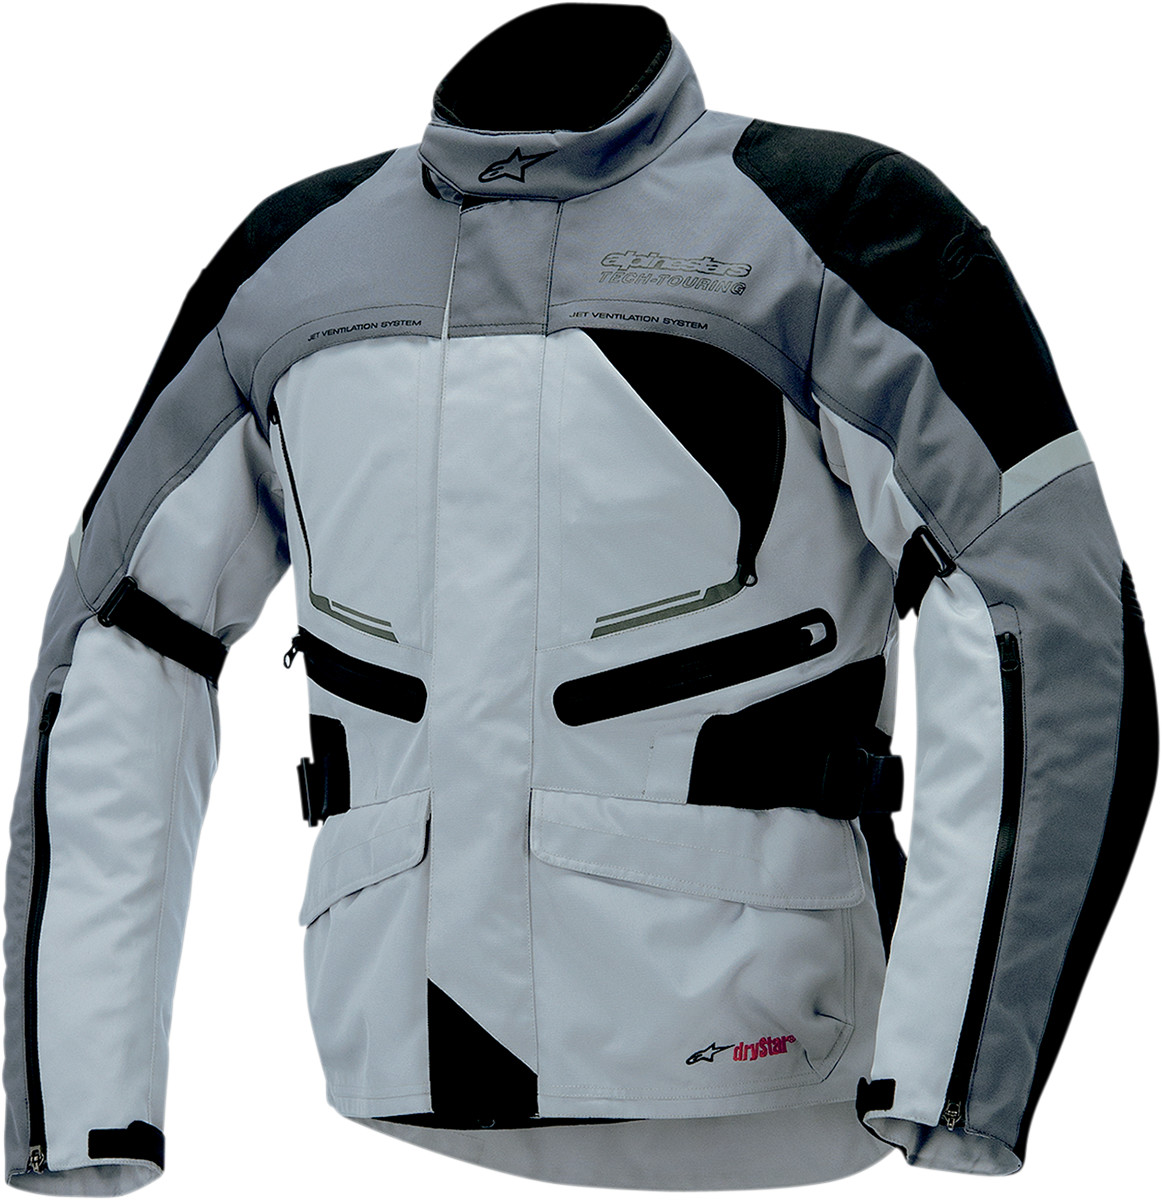 Alpine Motorcycle Gear >> Alpinestars Valparaiso Drystar Tech Touring Jacket Mens All Sizes All Colors | eBay